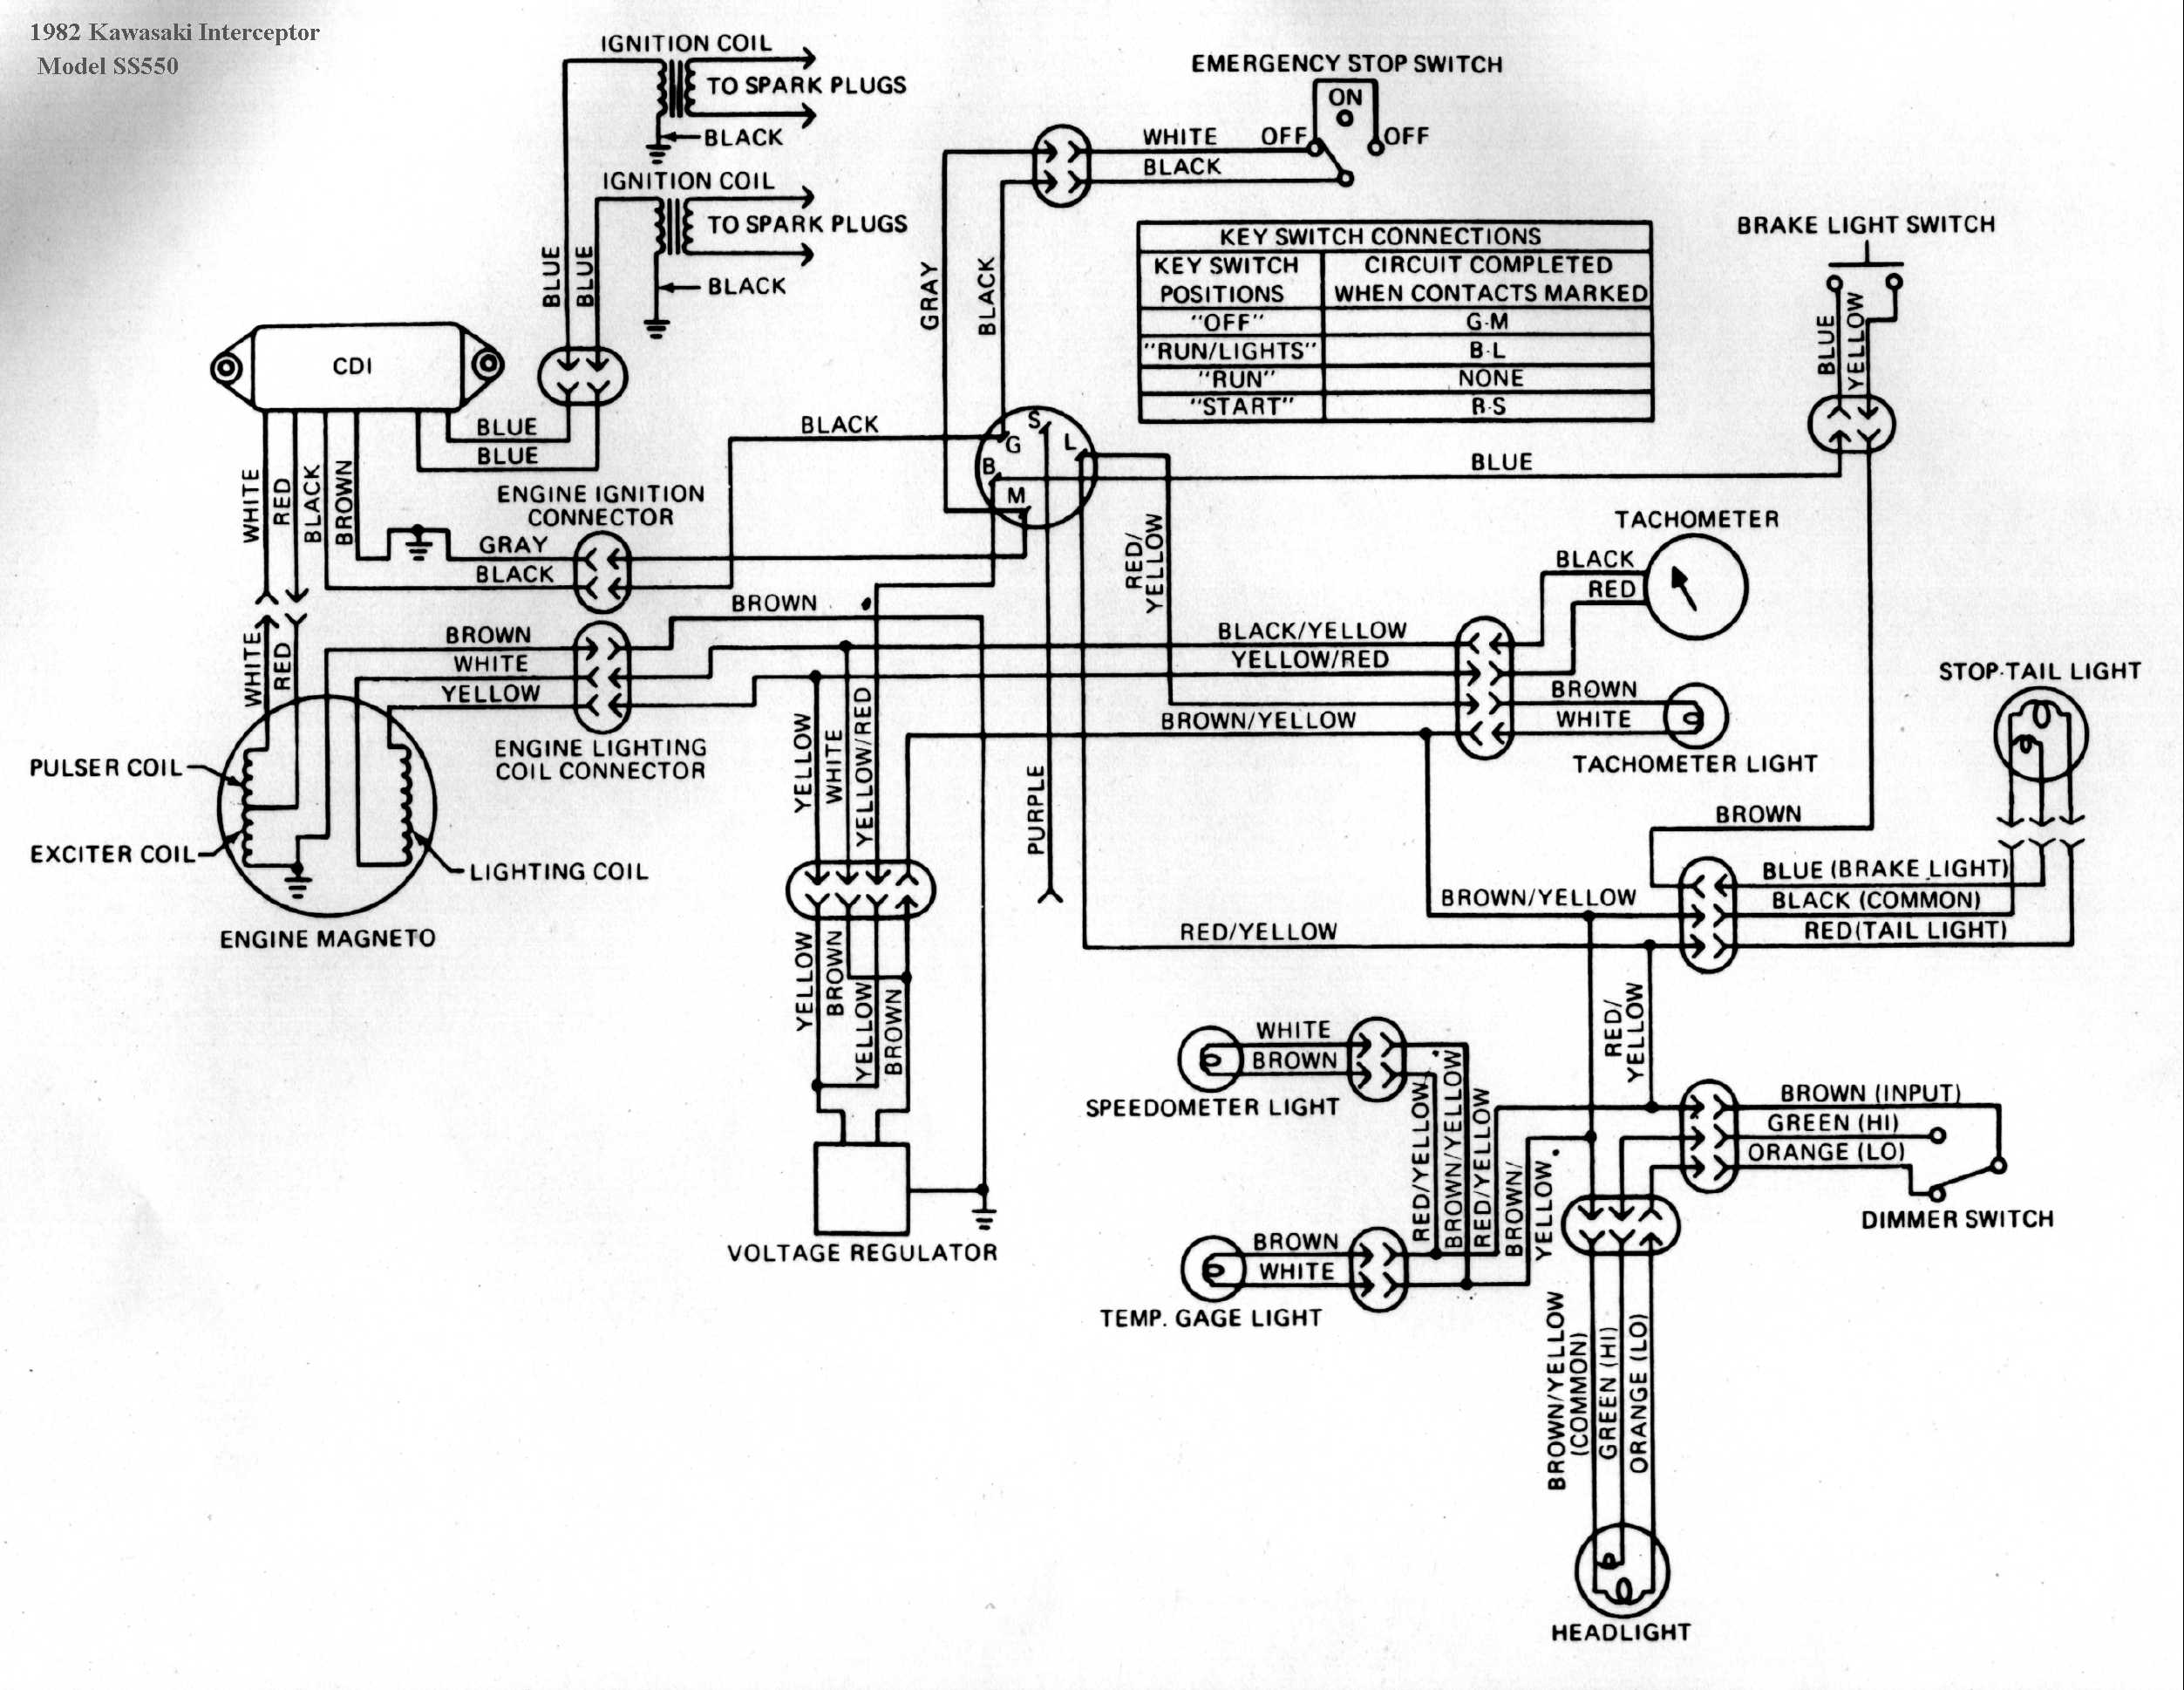 wiring diagram for 1995 kawasaki bayou 220 wiring diagram2000 bayou 220 wiring diagram index listing of wiring diagrams1995 kawasaki bayou wiring diagram 19 dfc20